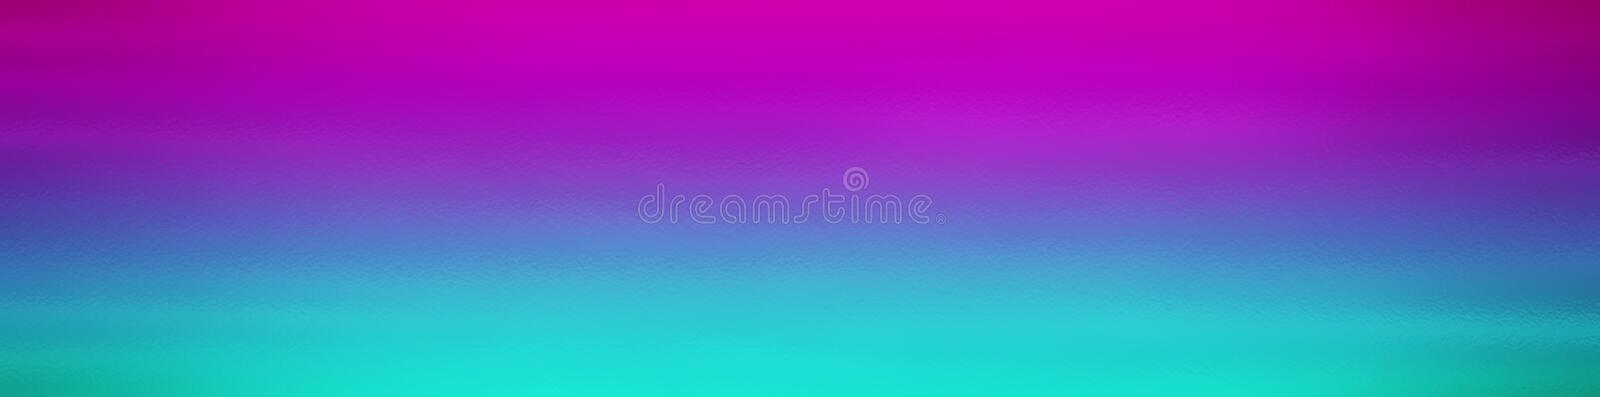 Blue and purple web site header or footer background. Abstract design template royalty free illustration